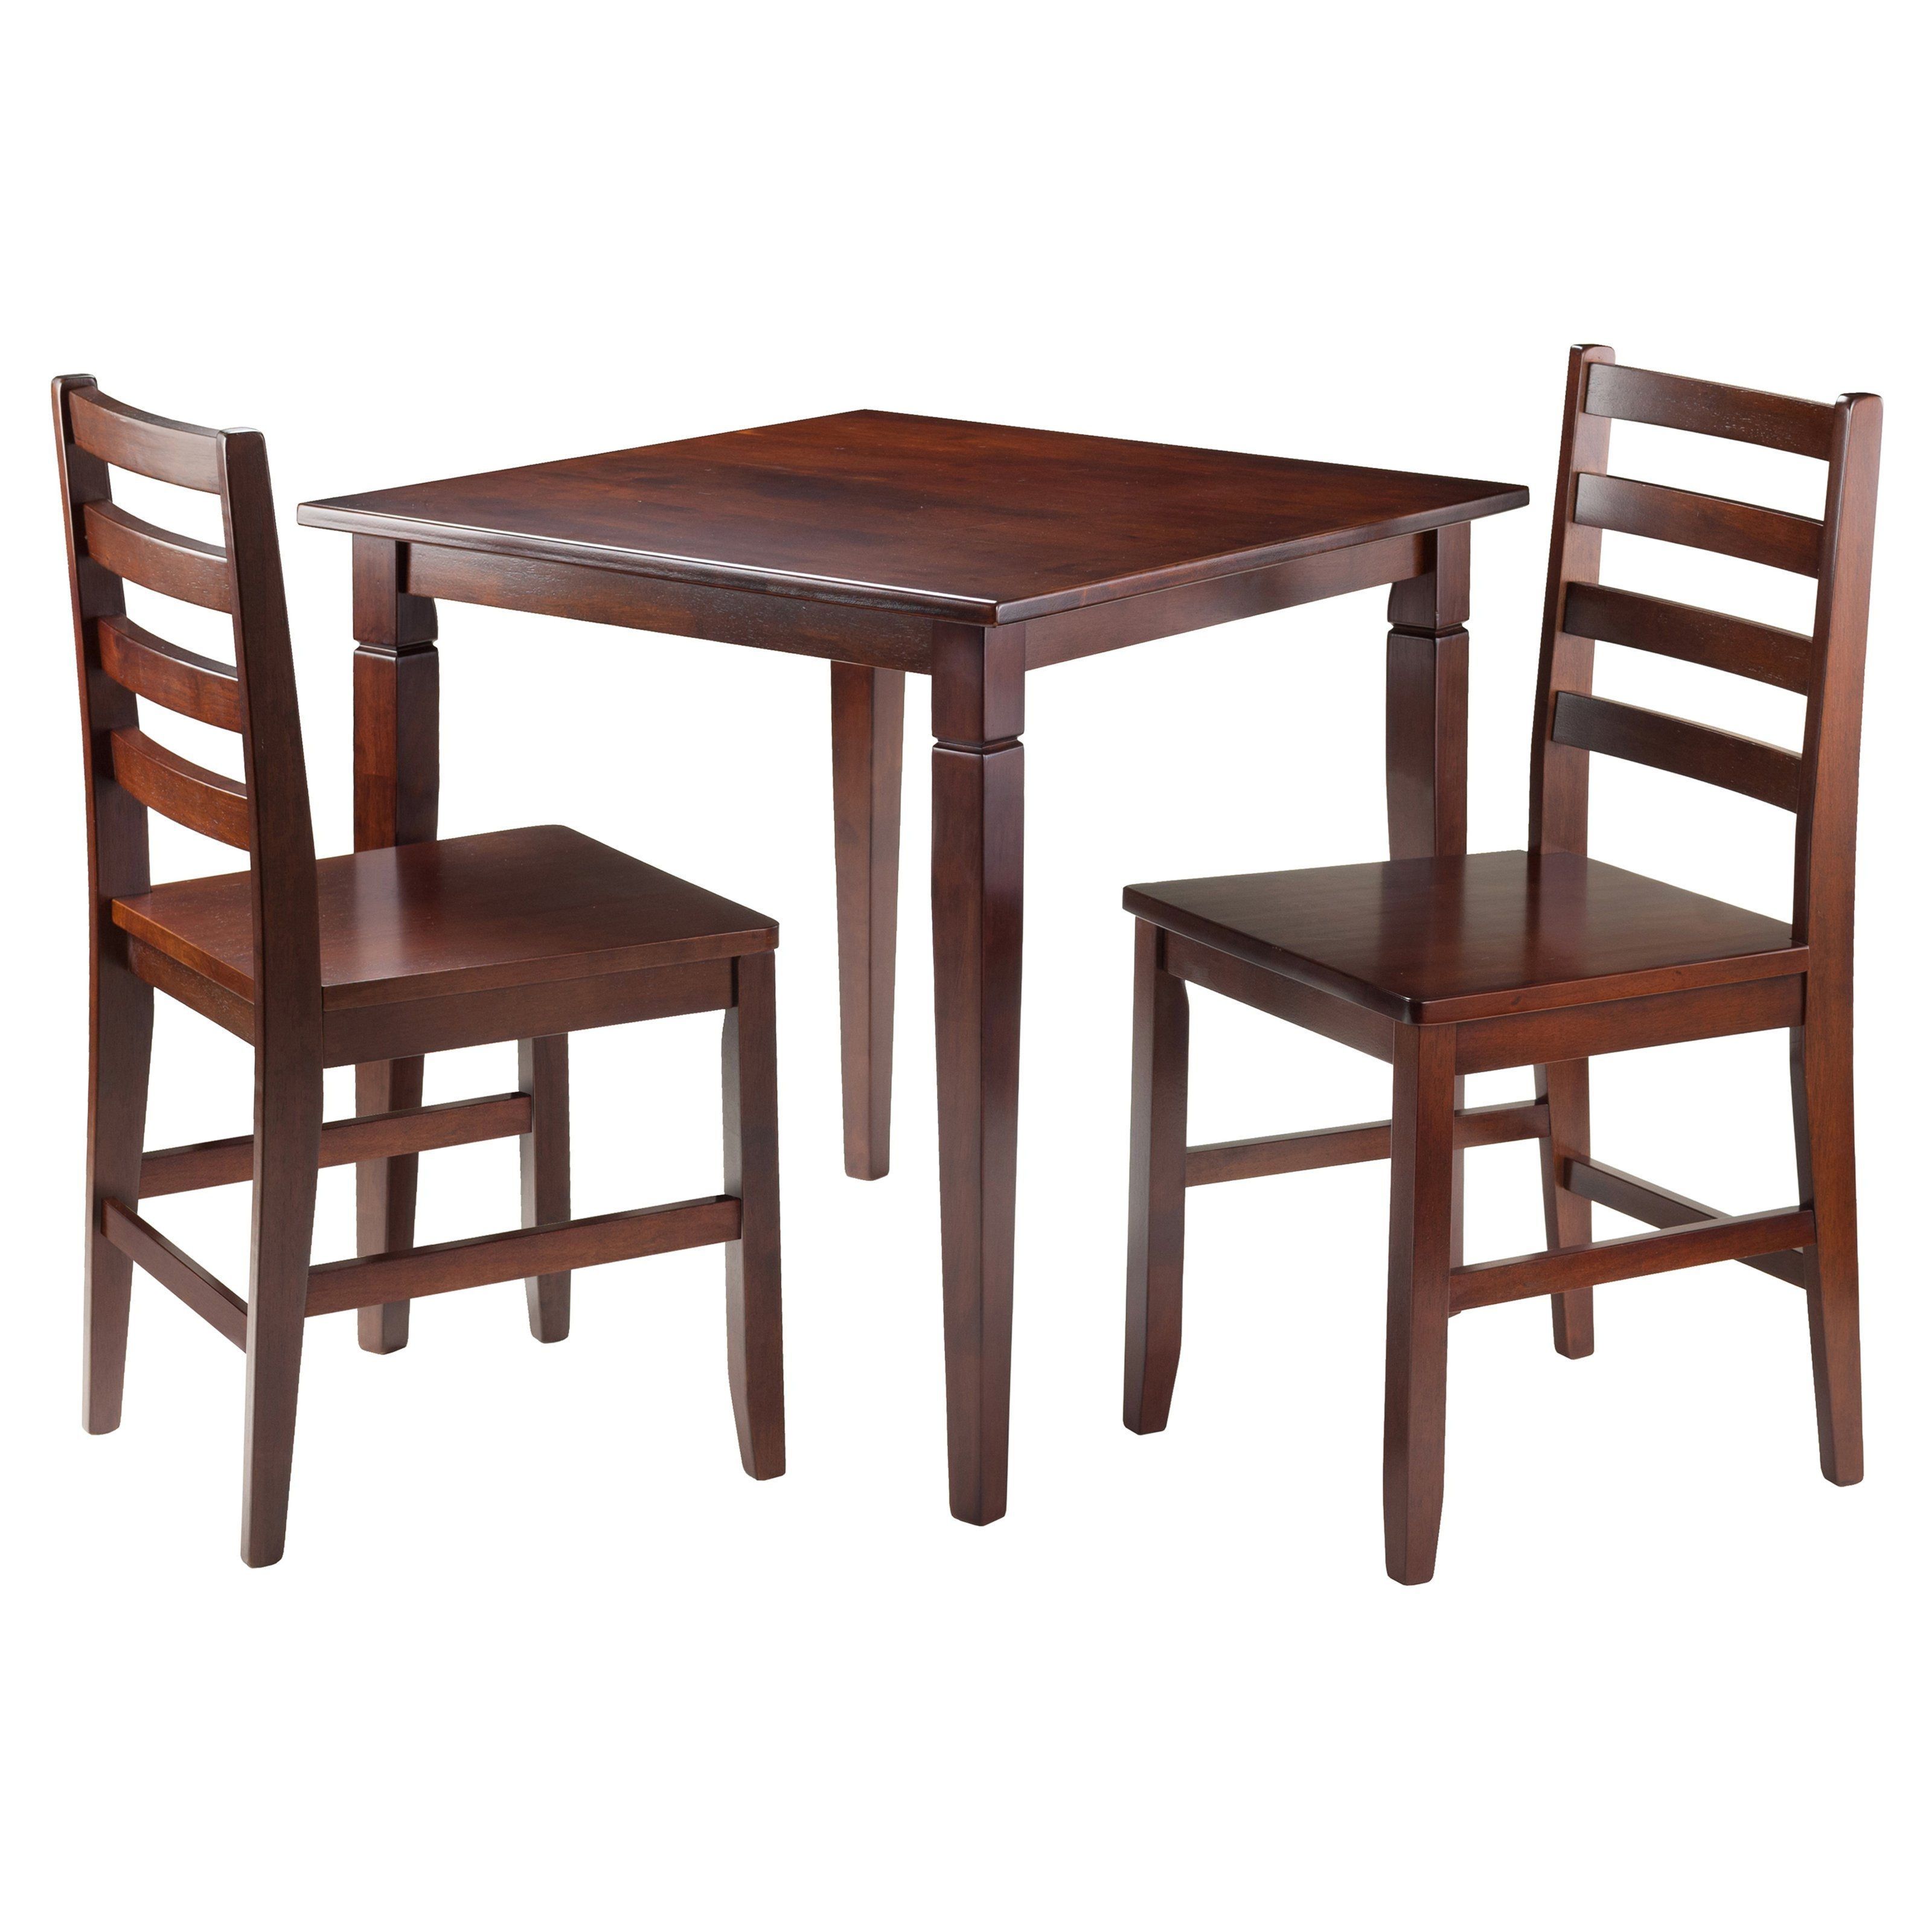 Have To Have Itwinsome Trading Kingsgate 3 Piece Dining Table Delectable 3 Piece Kitchen Table Set Design Decoration